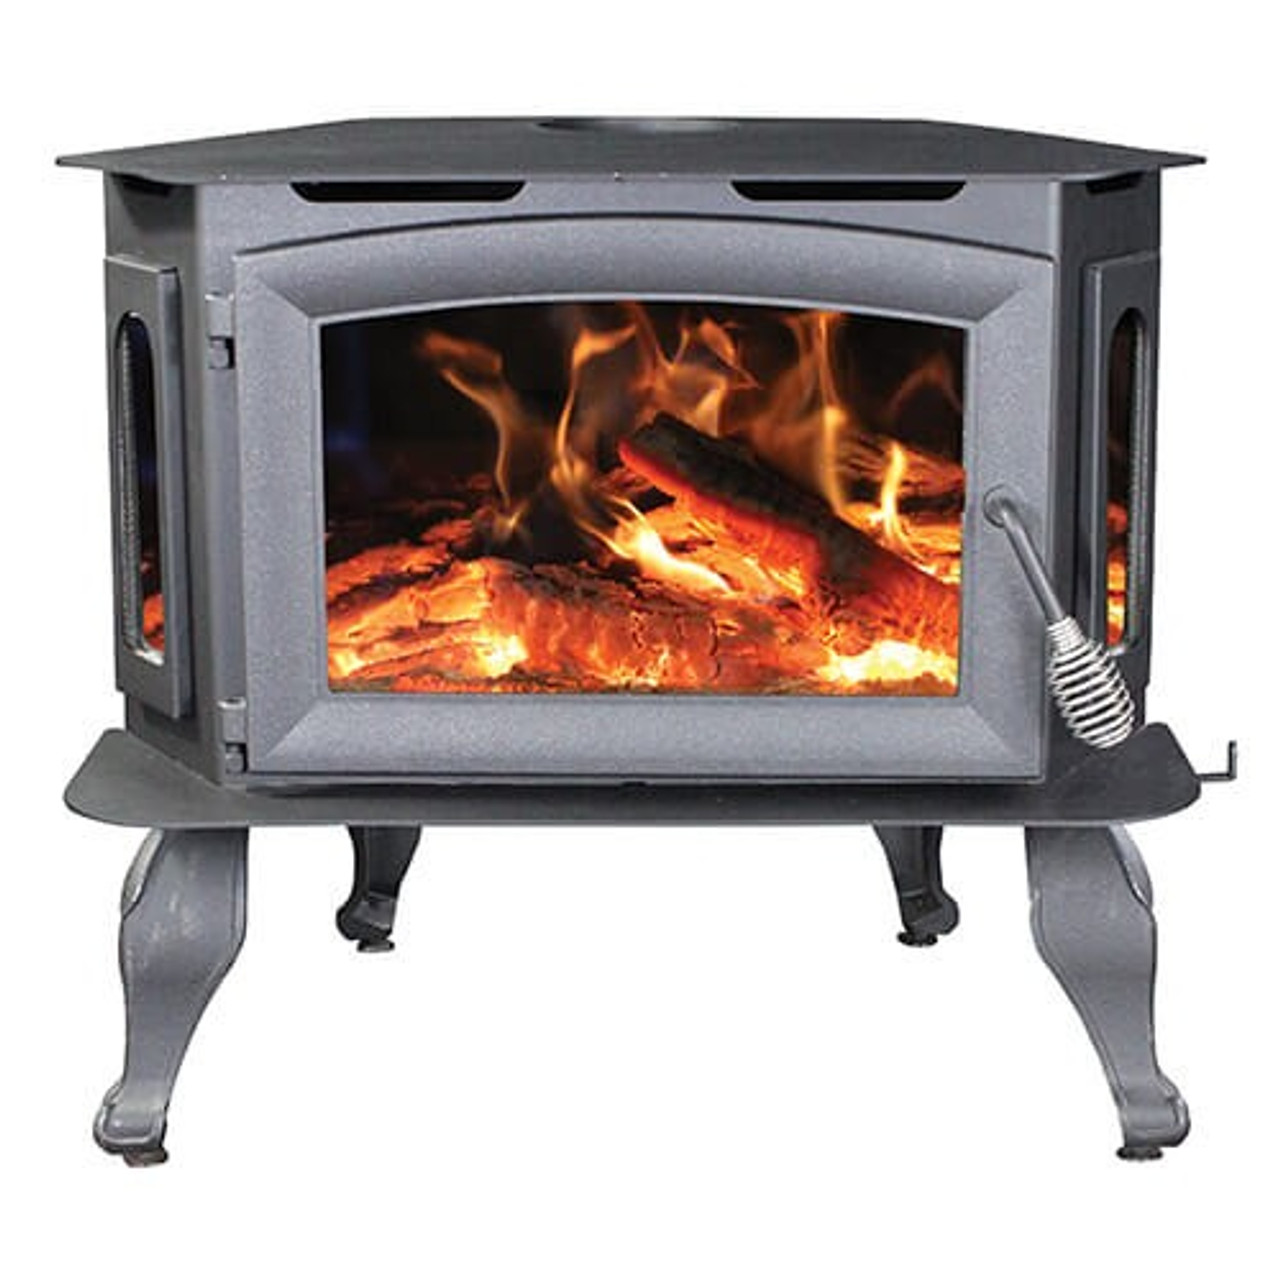 Breckwell SW180 Bay Front Wood Stove/Insert